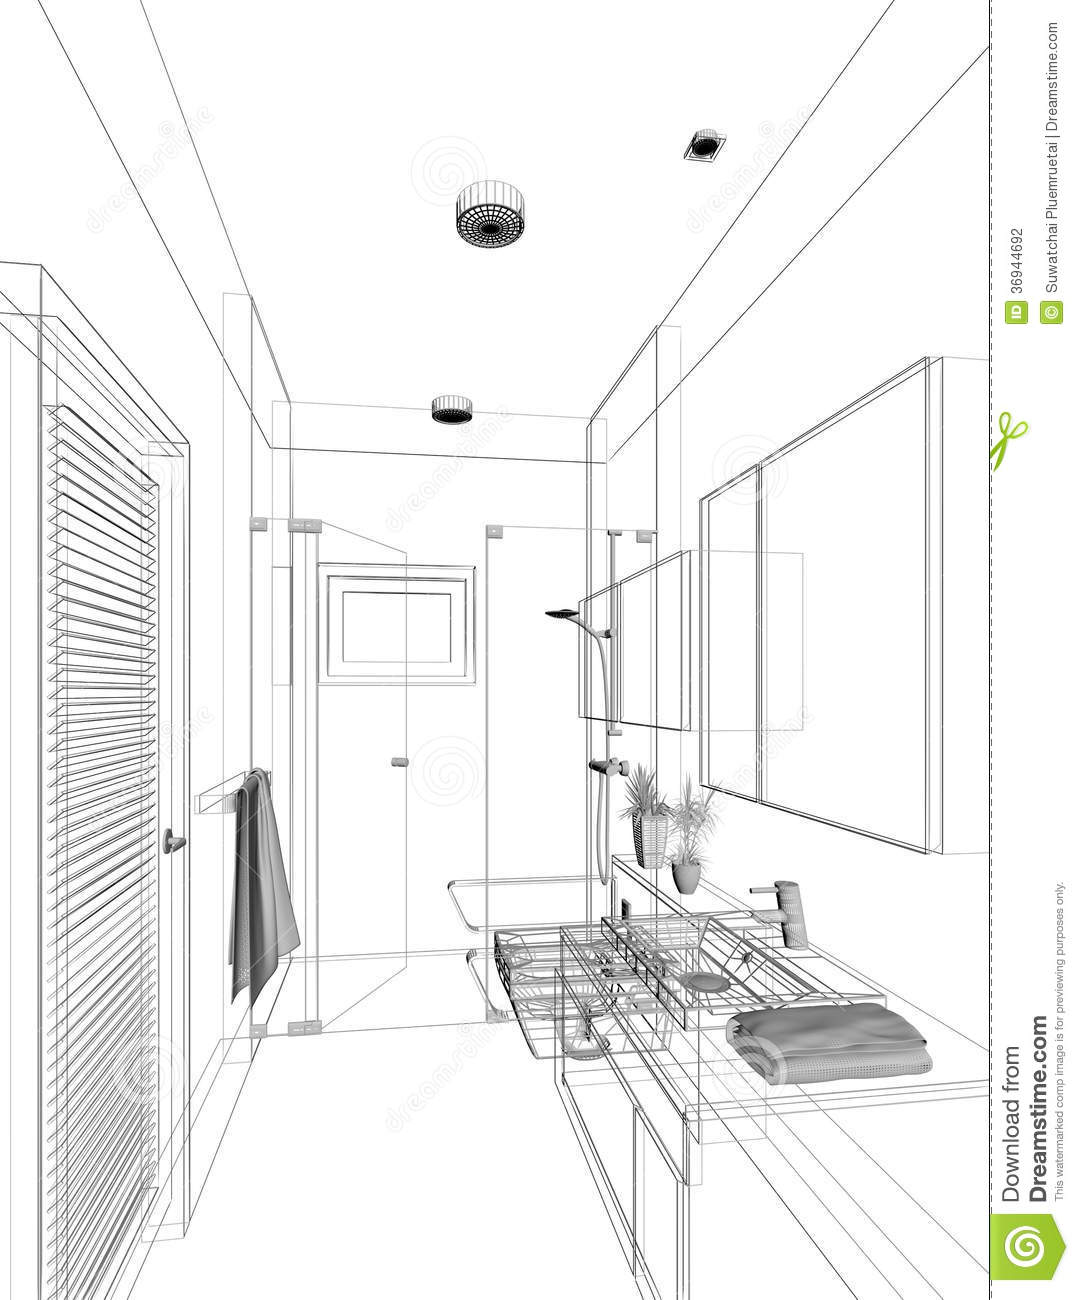 Sketch Design Of Interior Bathroom Stock Photography